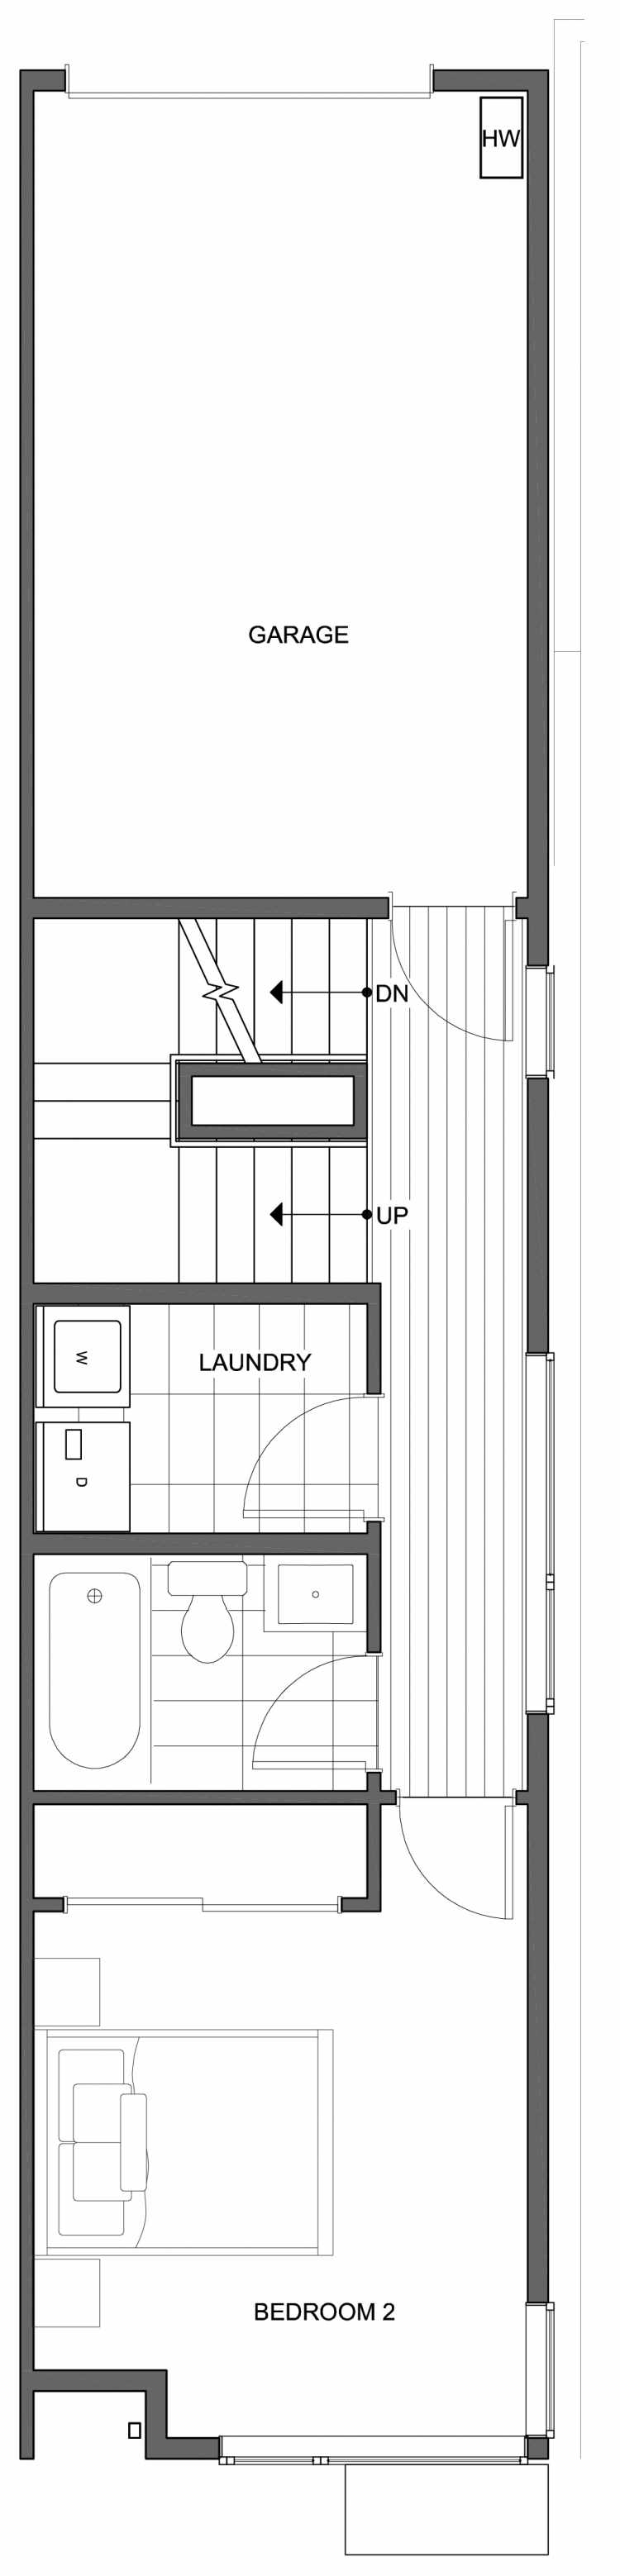 Second Floor Plan of 806G N 46th St, One of the Nino 15 East Townhomes by Isola Homes